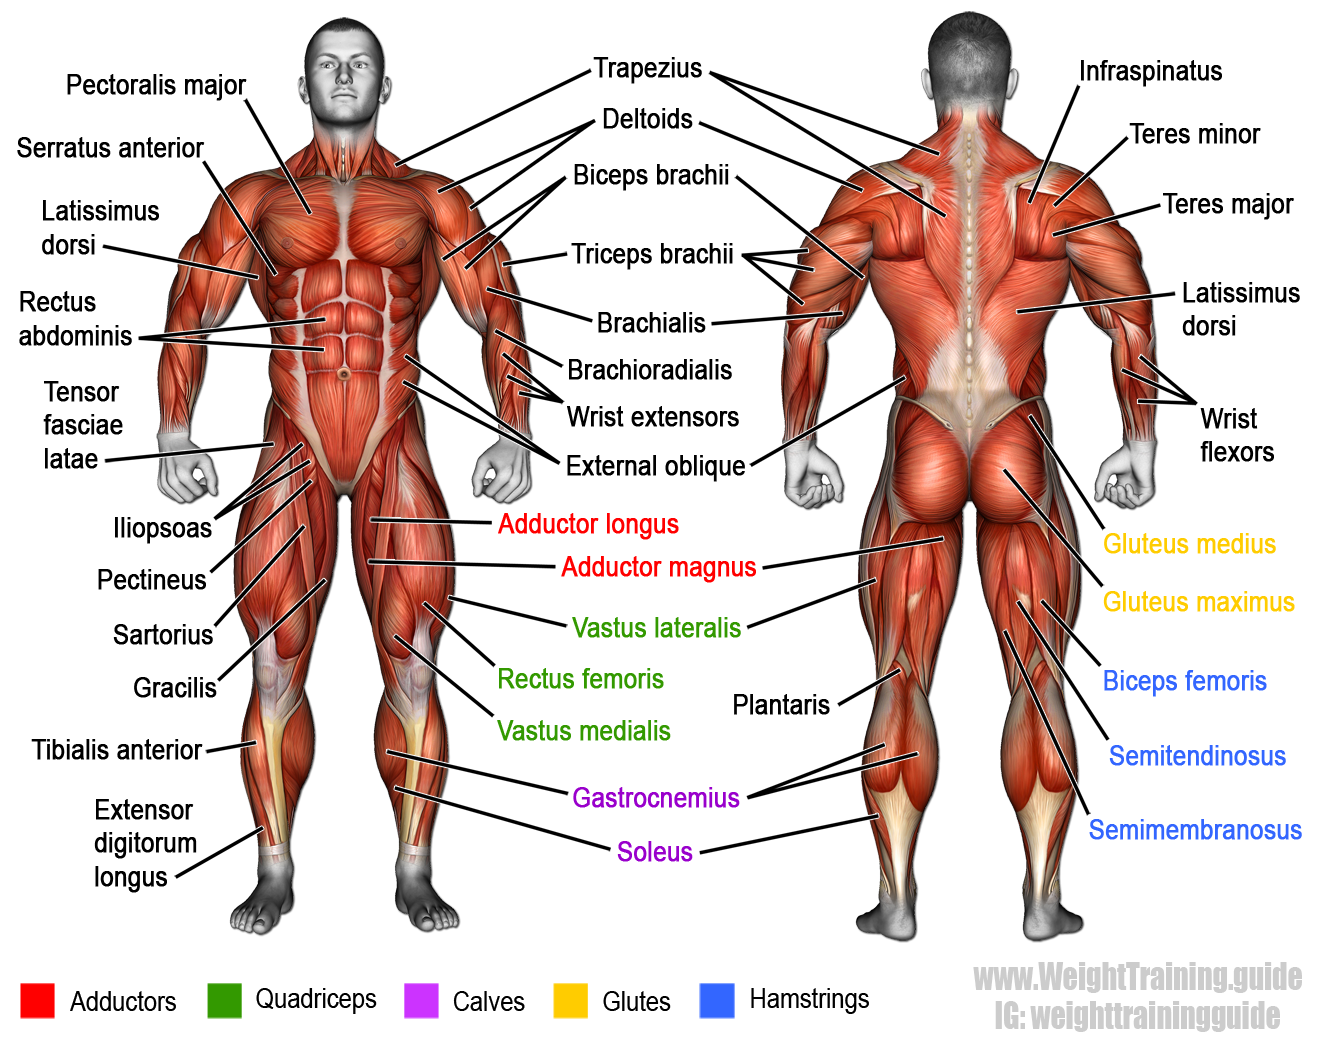 Learn muscle names and how to memorize them pinterest muscular the muscular system illustrating most of the anterior and posterior superficial muscles of the human body visit site to learn more ccuart Images